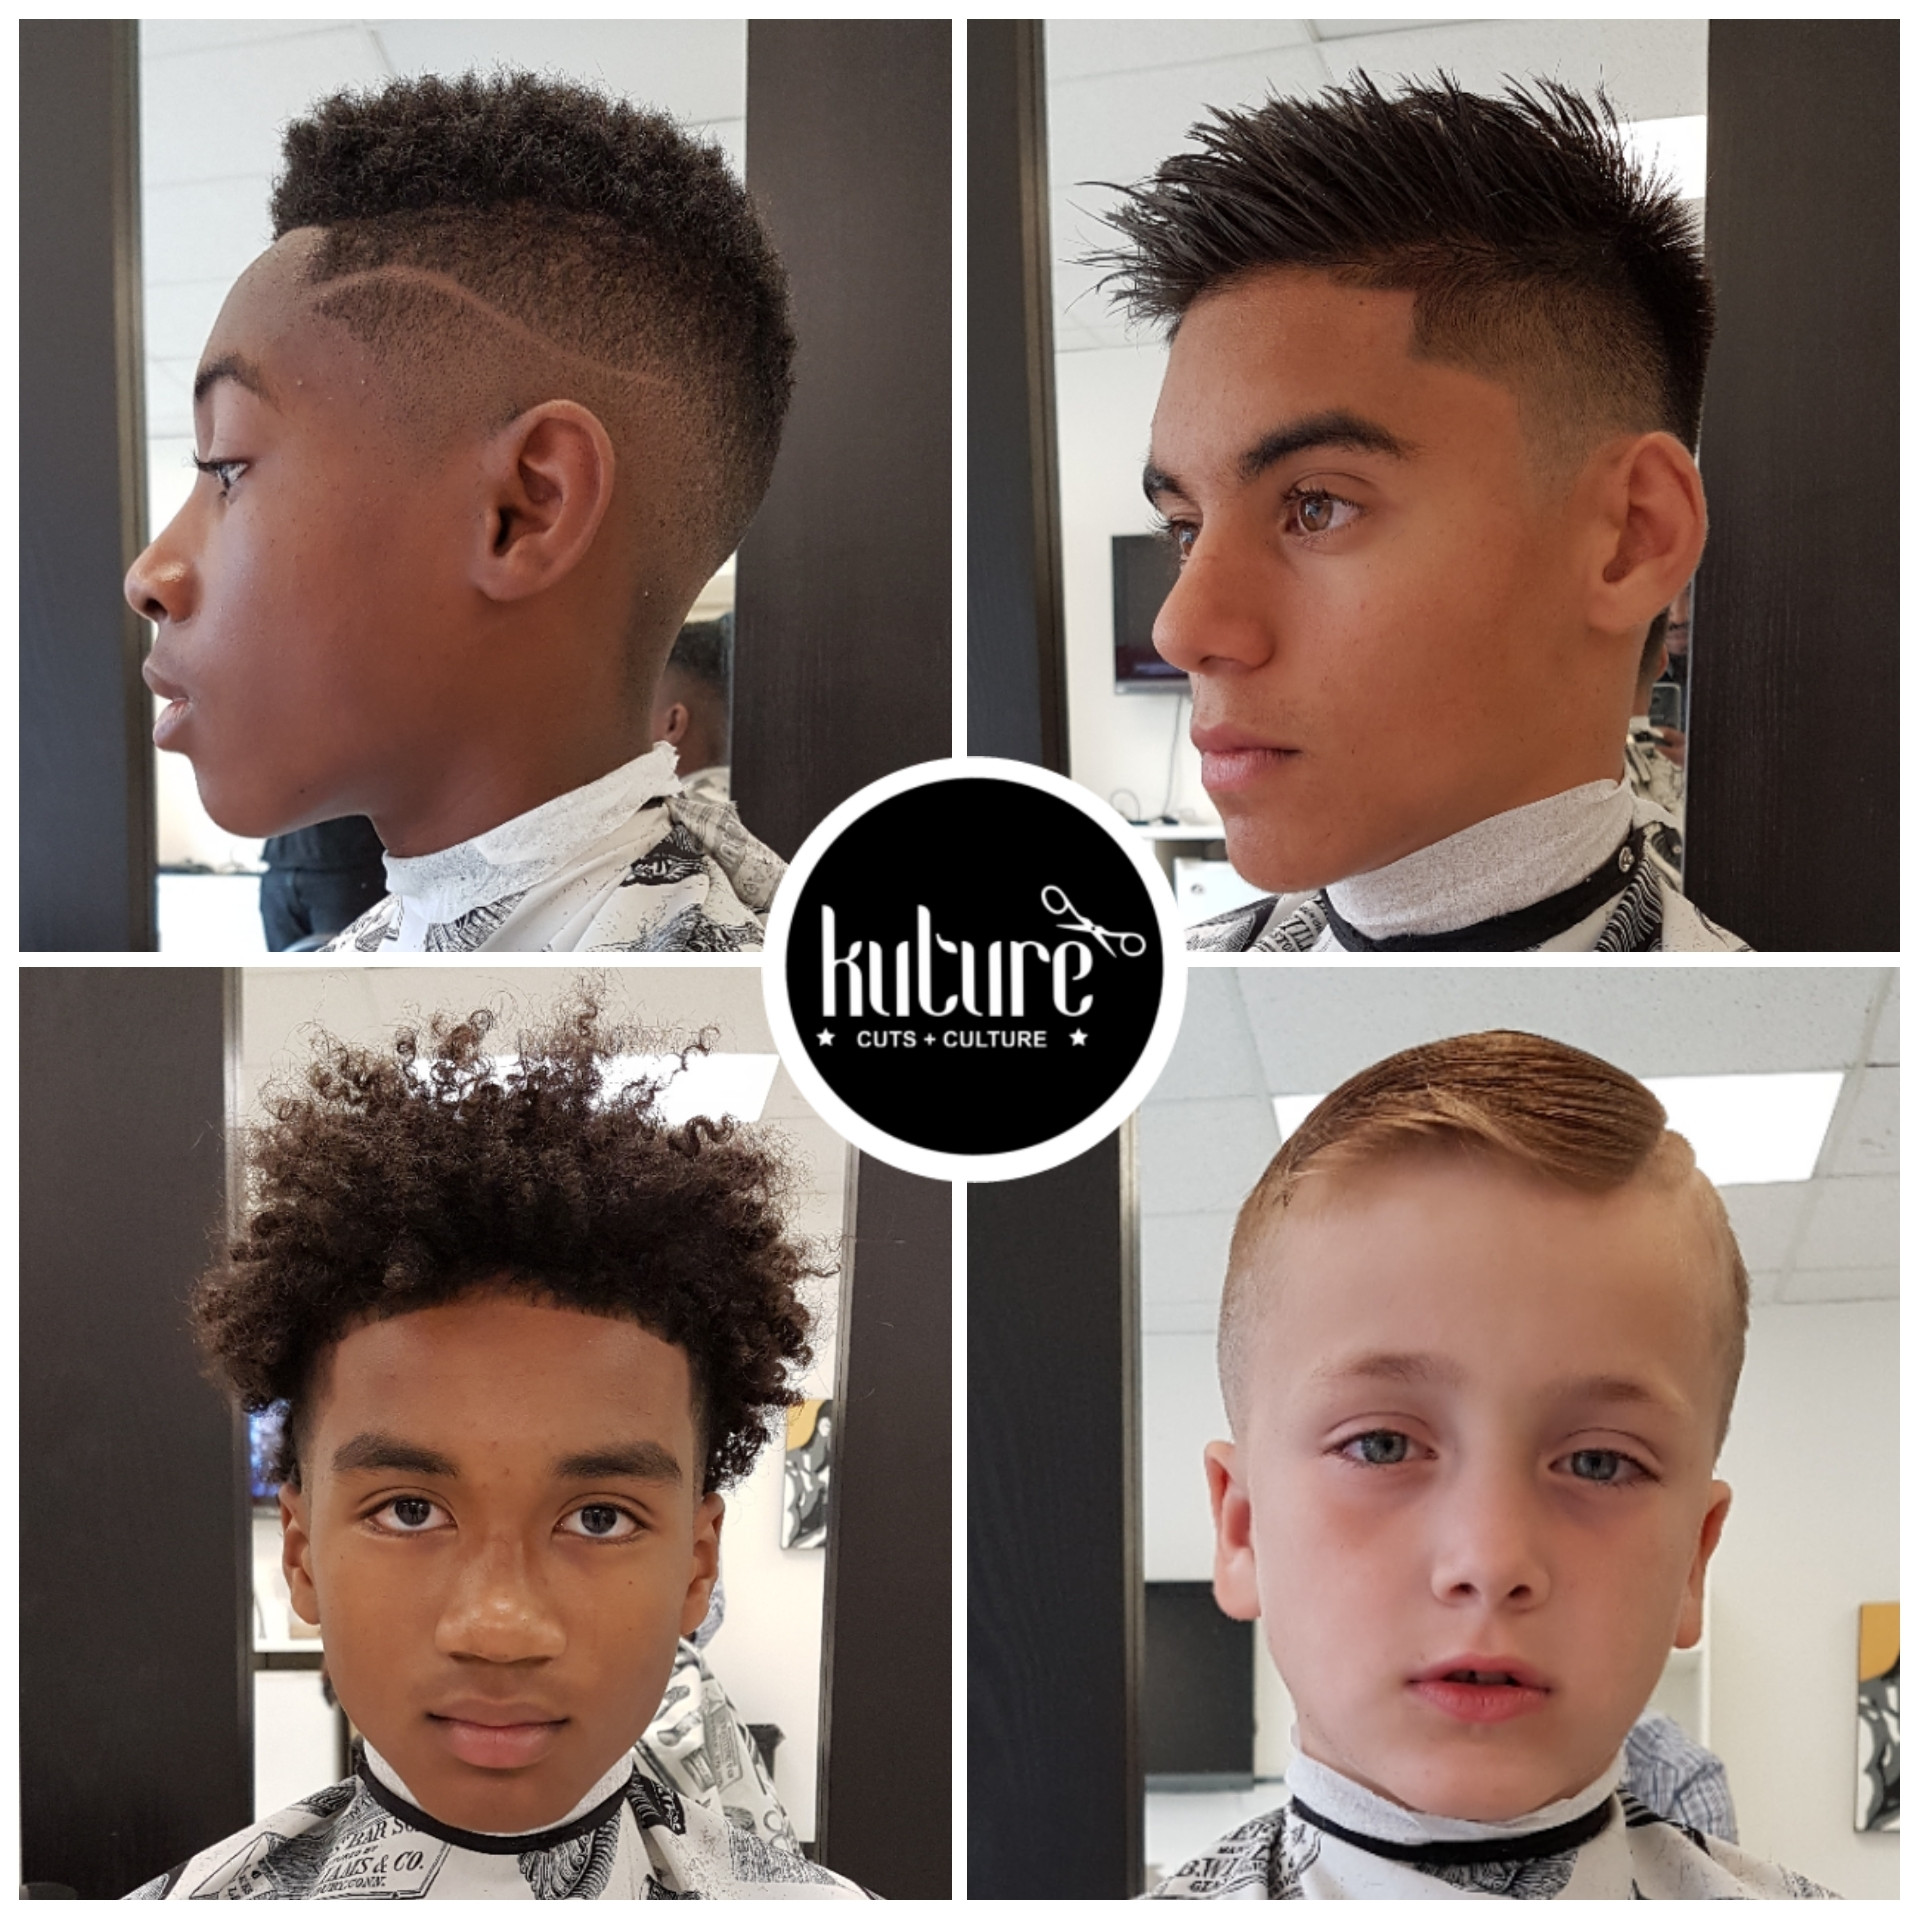 Youth Haircut (18yrs and under)